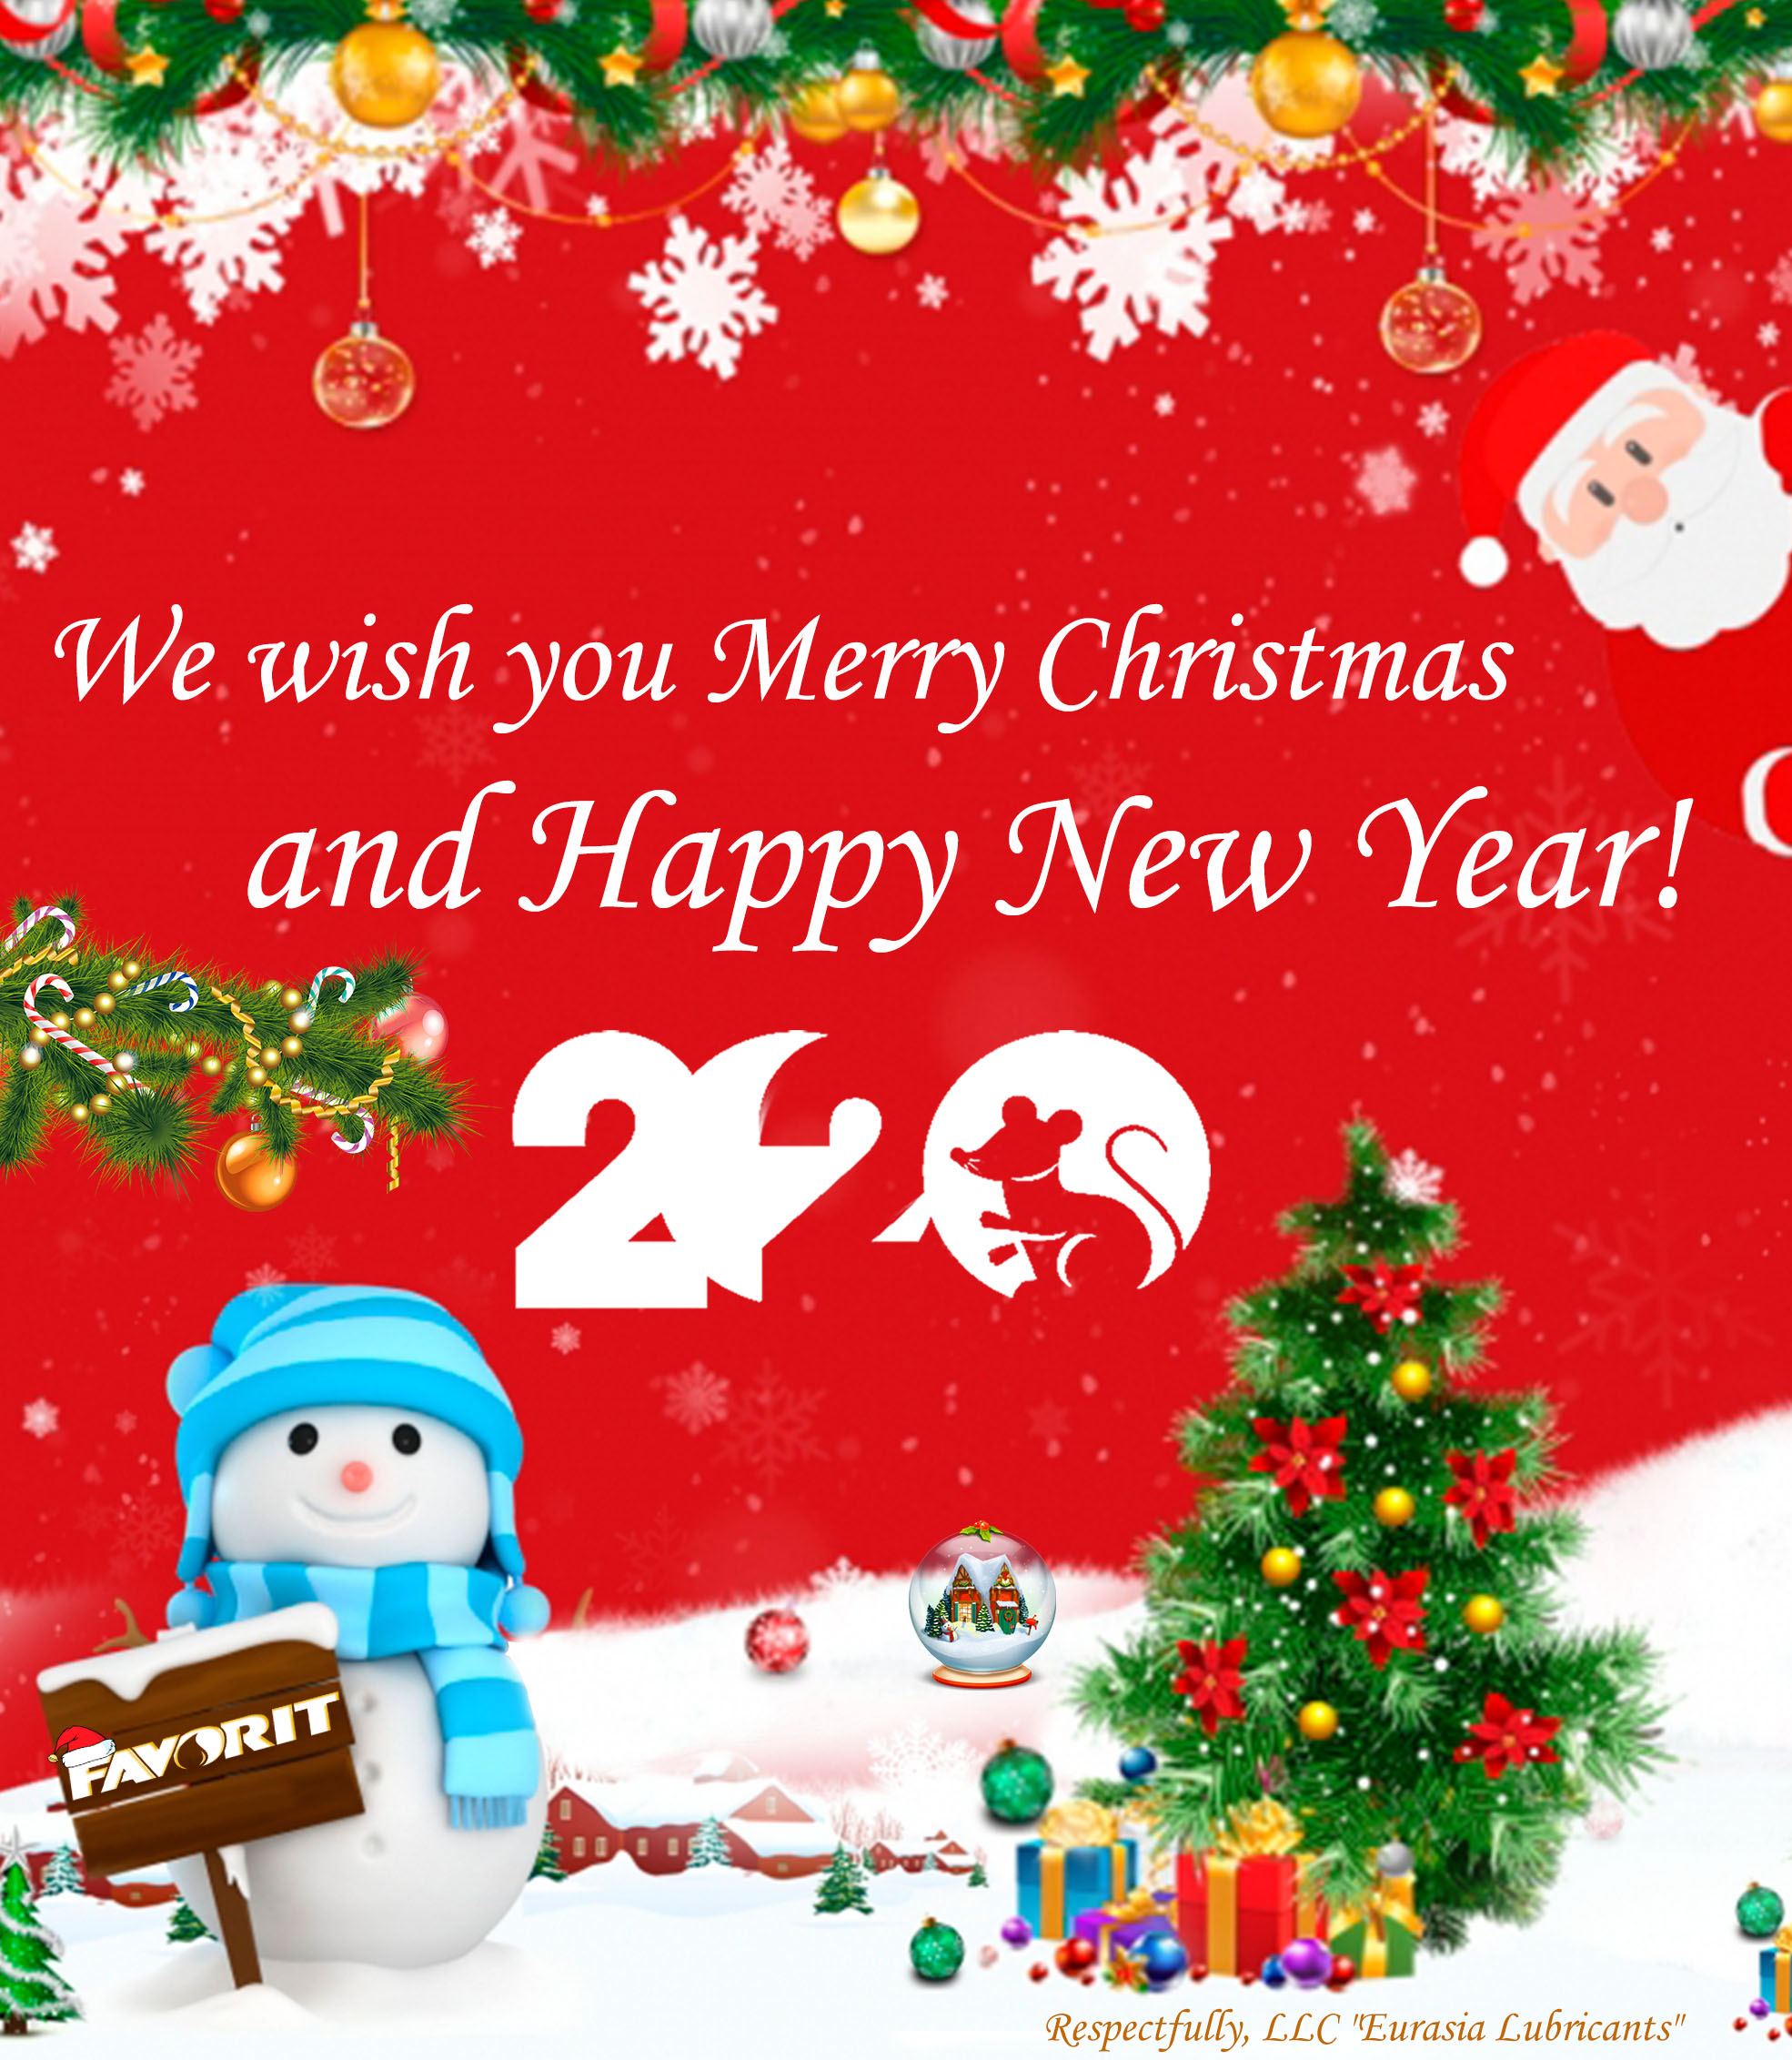 We wish you Merry Christmas and Happy New Year 2020!